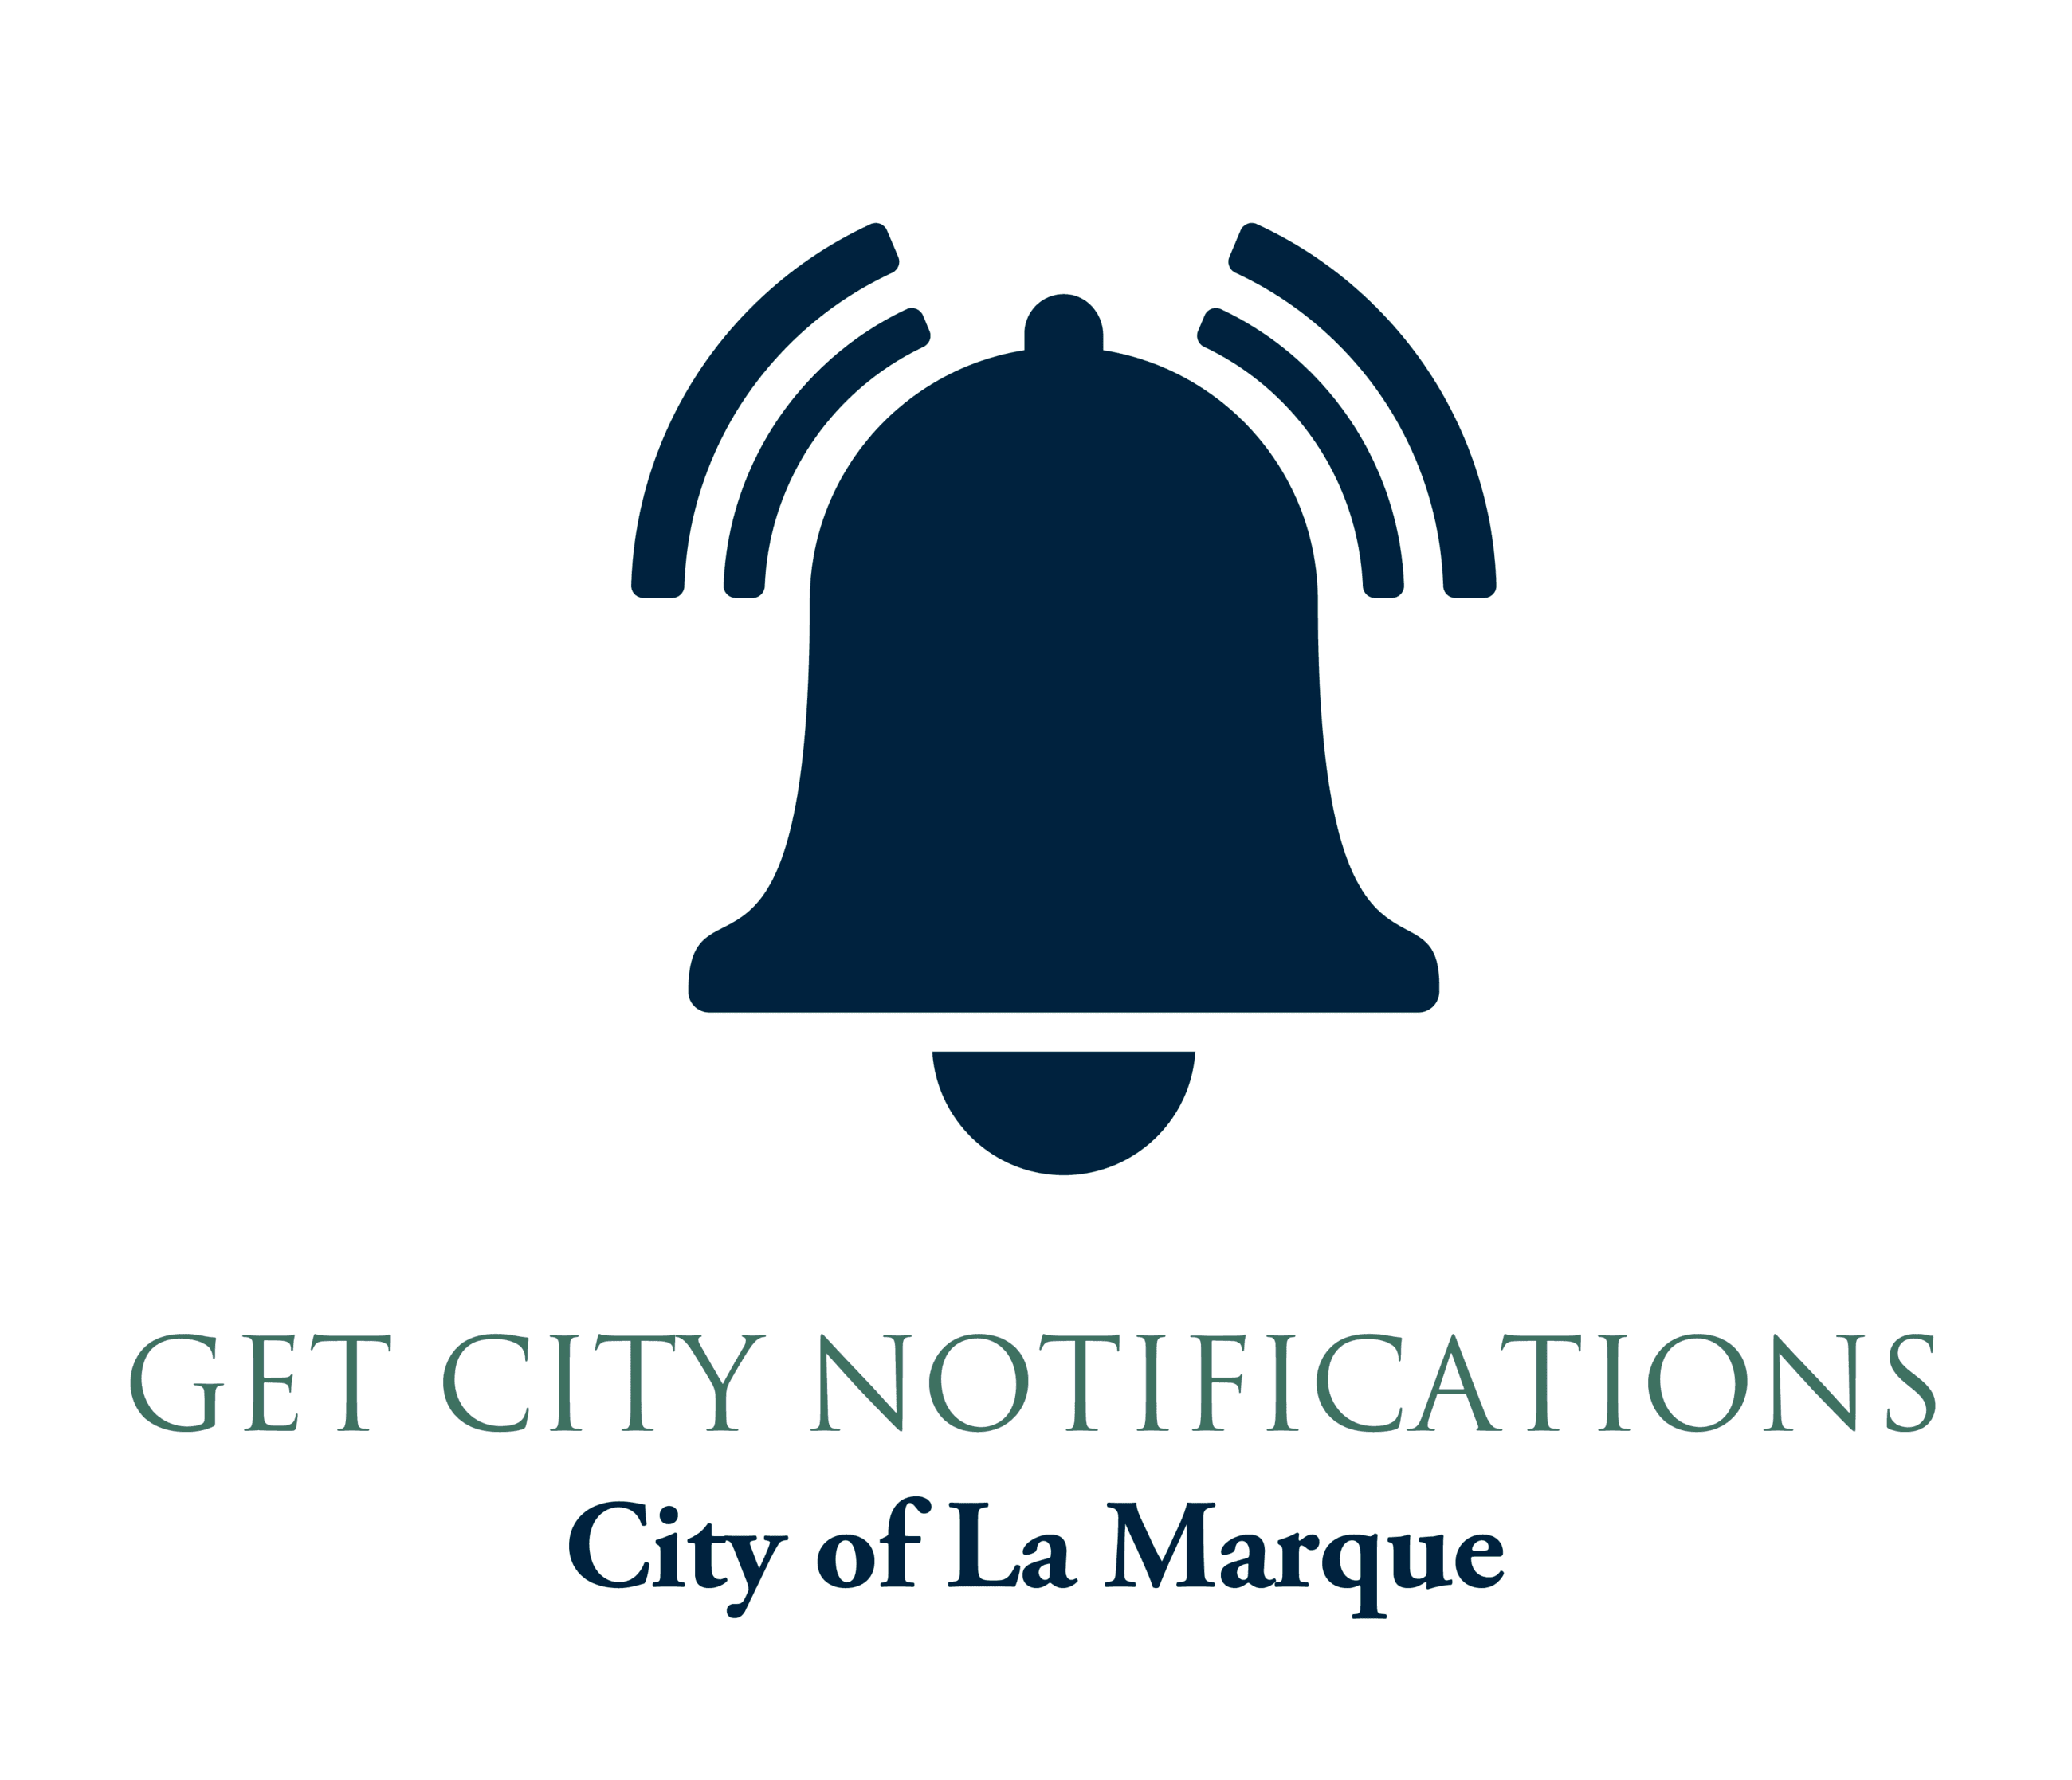 Notification graphic with little bell_3112020